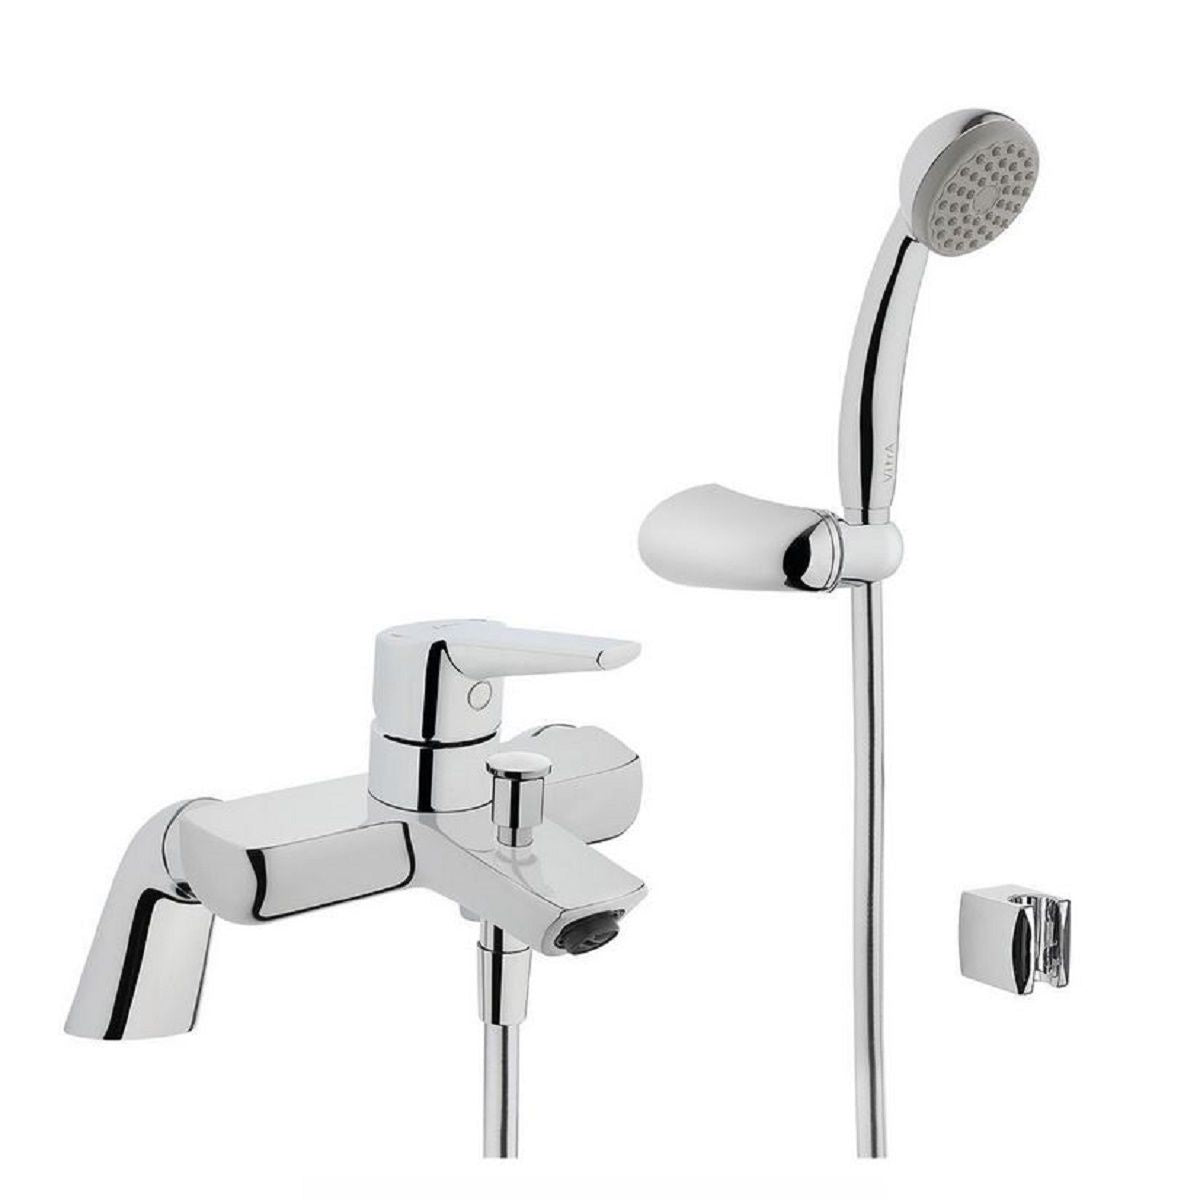 Vitra Solid S Bath Shower Mixer - Blue Sky Bathrooms Ltd